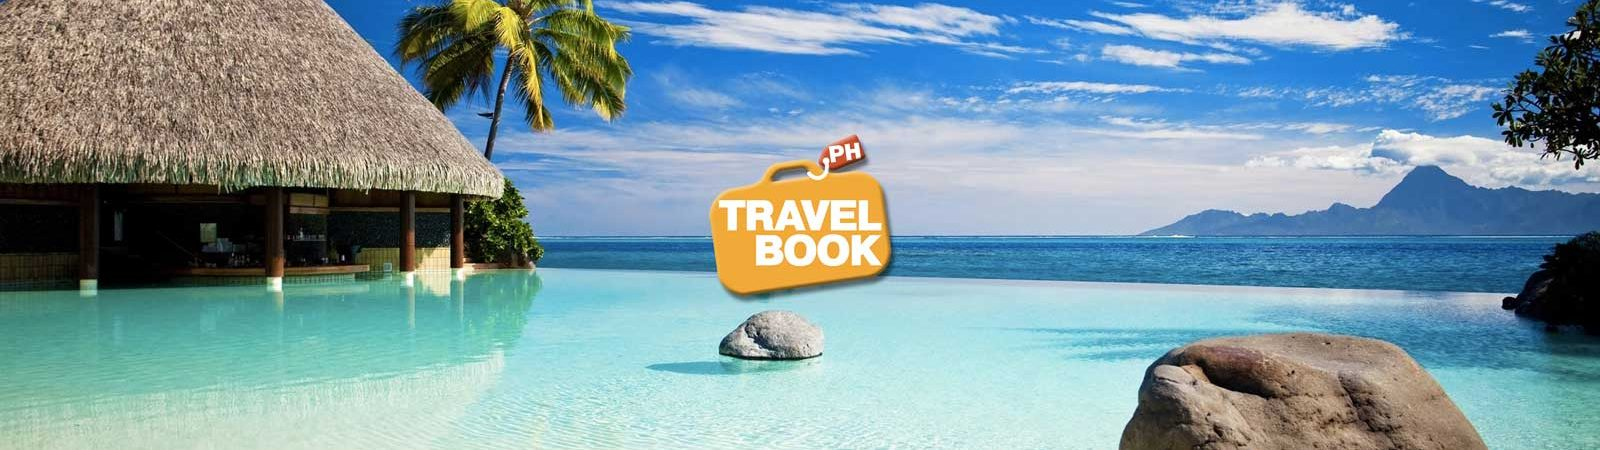 travelbook.ph